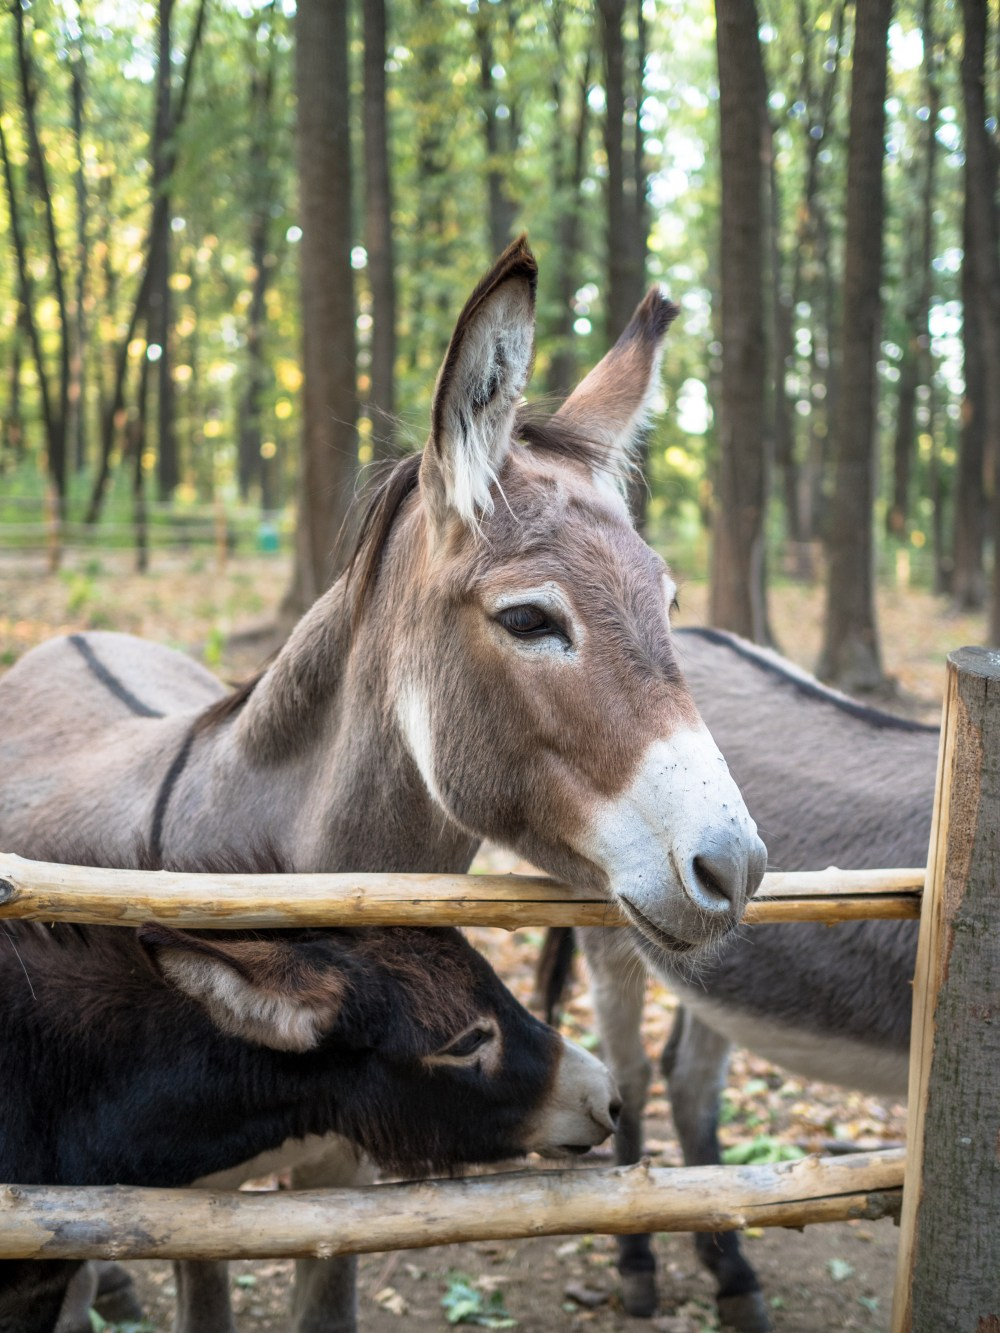 Cute Baby Animals Wallpapers Free Download Donkey Near Brown Wooden Fence During Daytime Photo Free